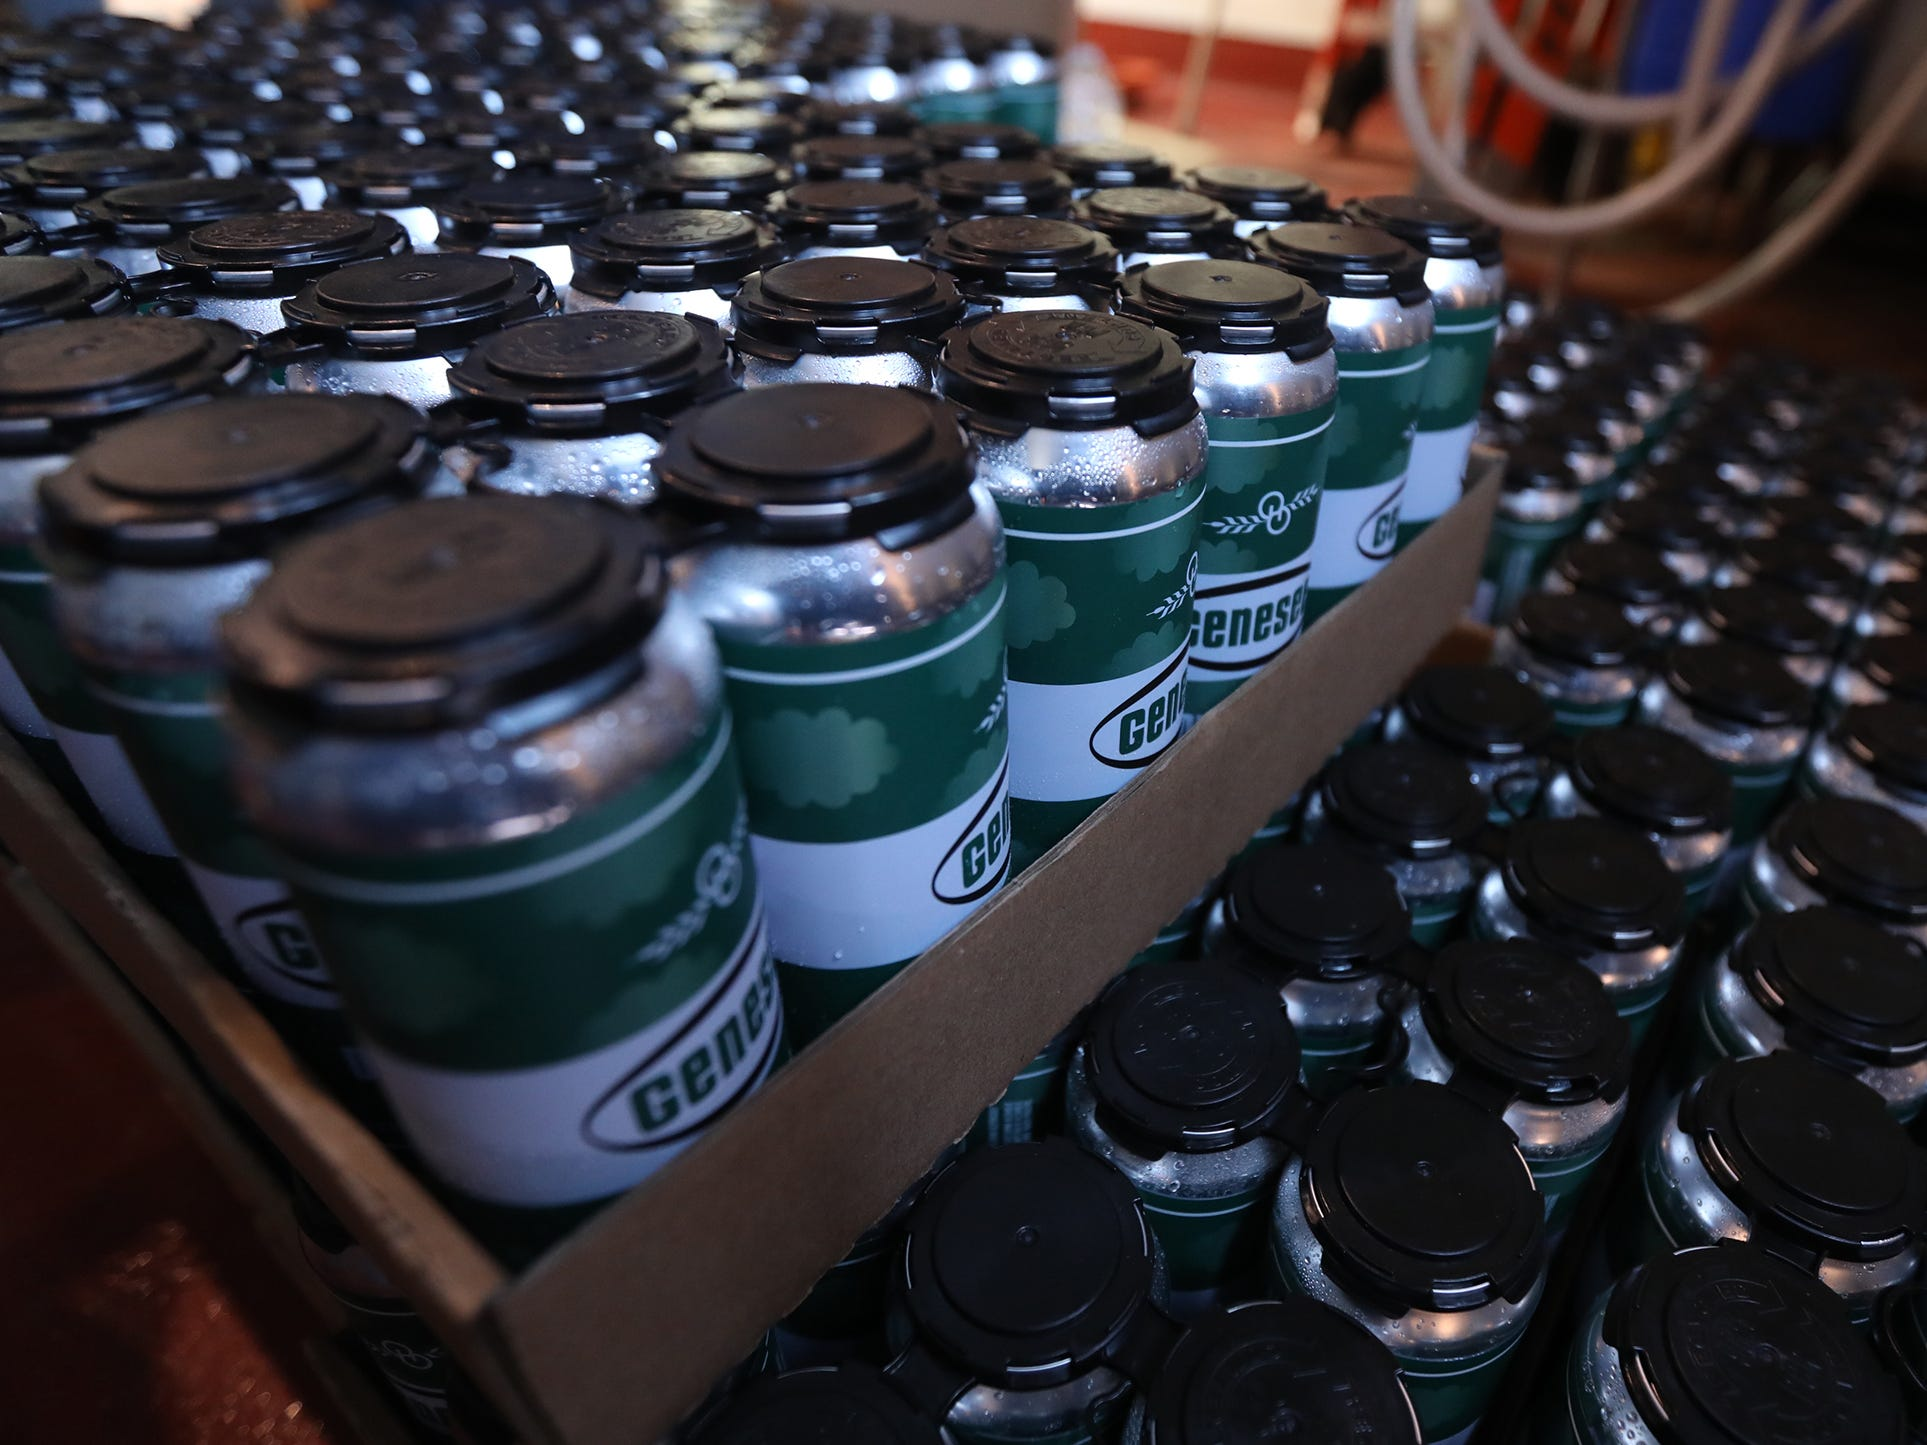 180 cases of Genesee Dream Ale were canned.